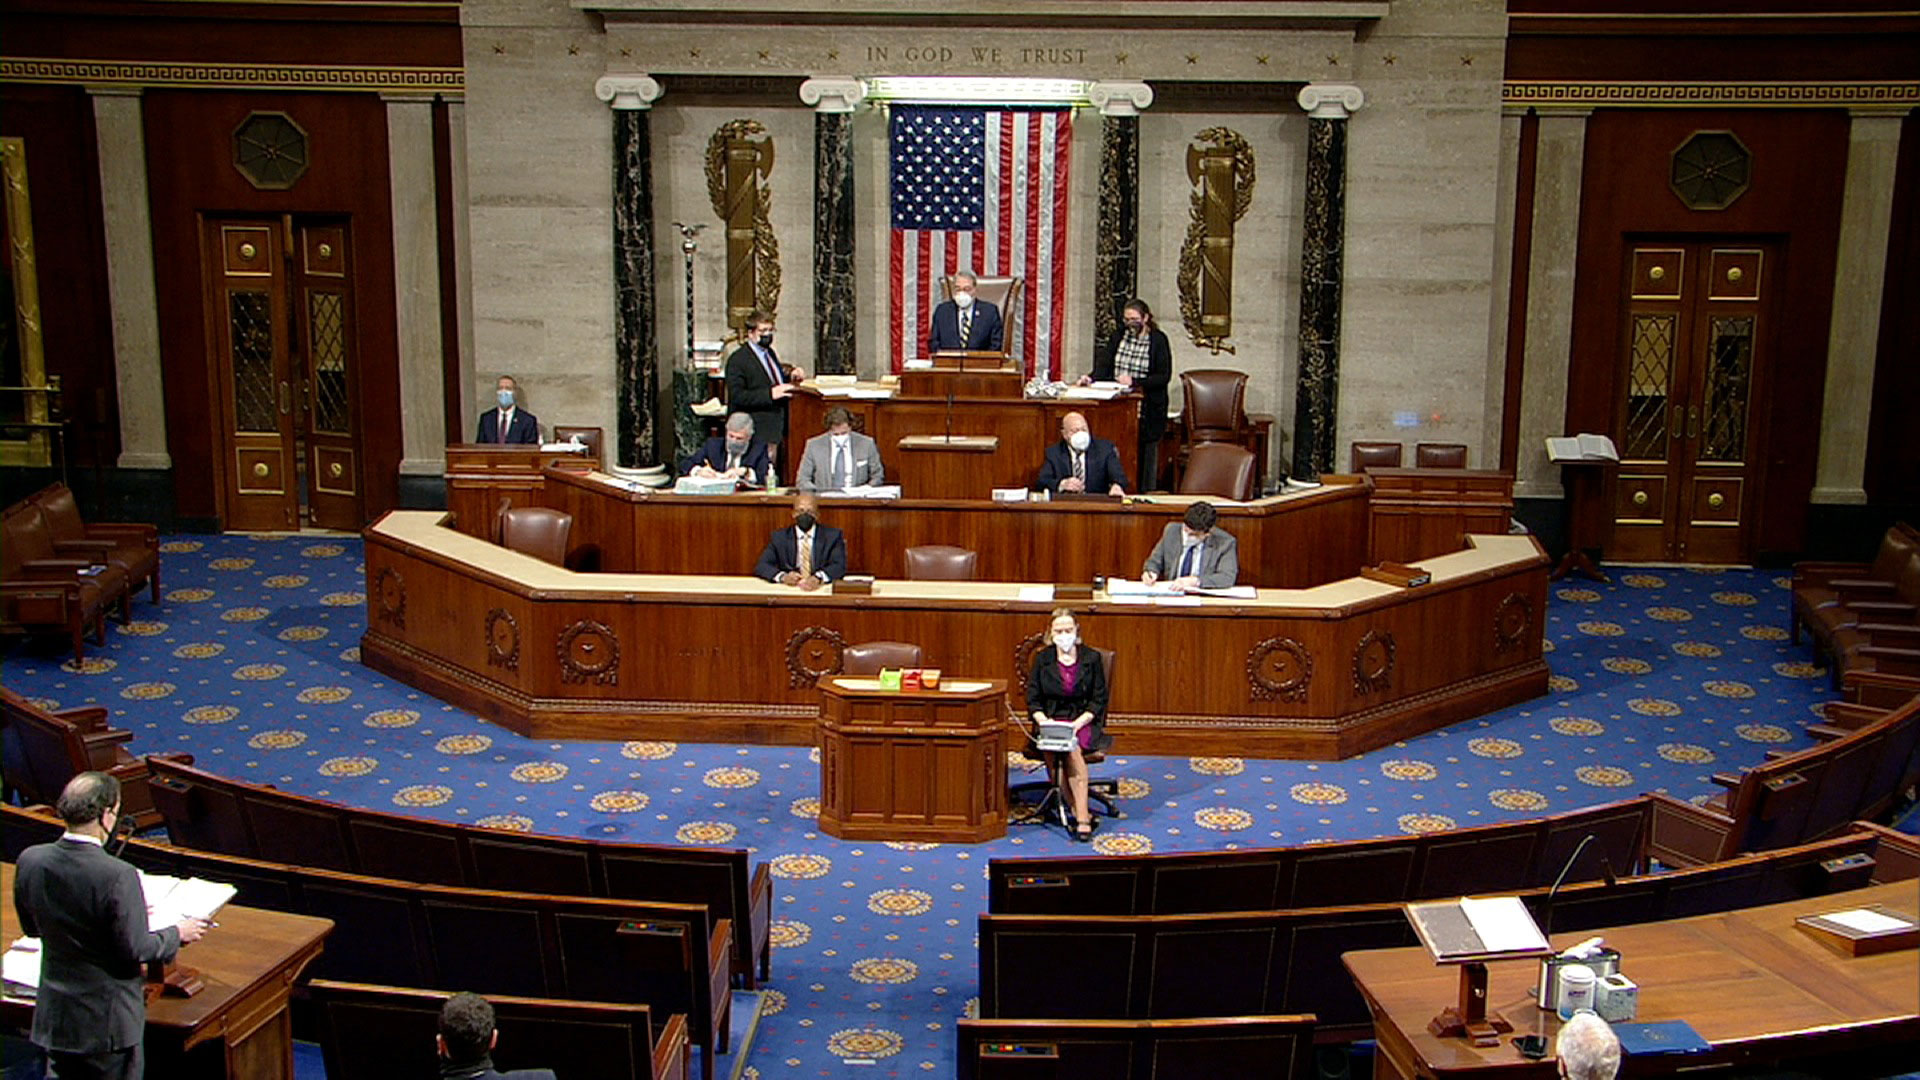 A view of the House floor on January 12, prior to the introduction of a resolution calling for Vice President Mike Pence to invoke the 25th Amendement.